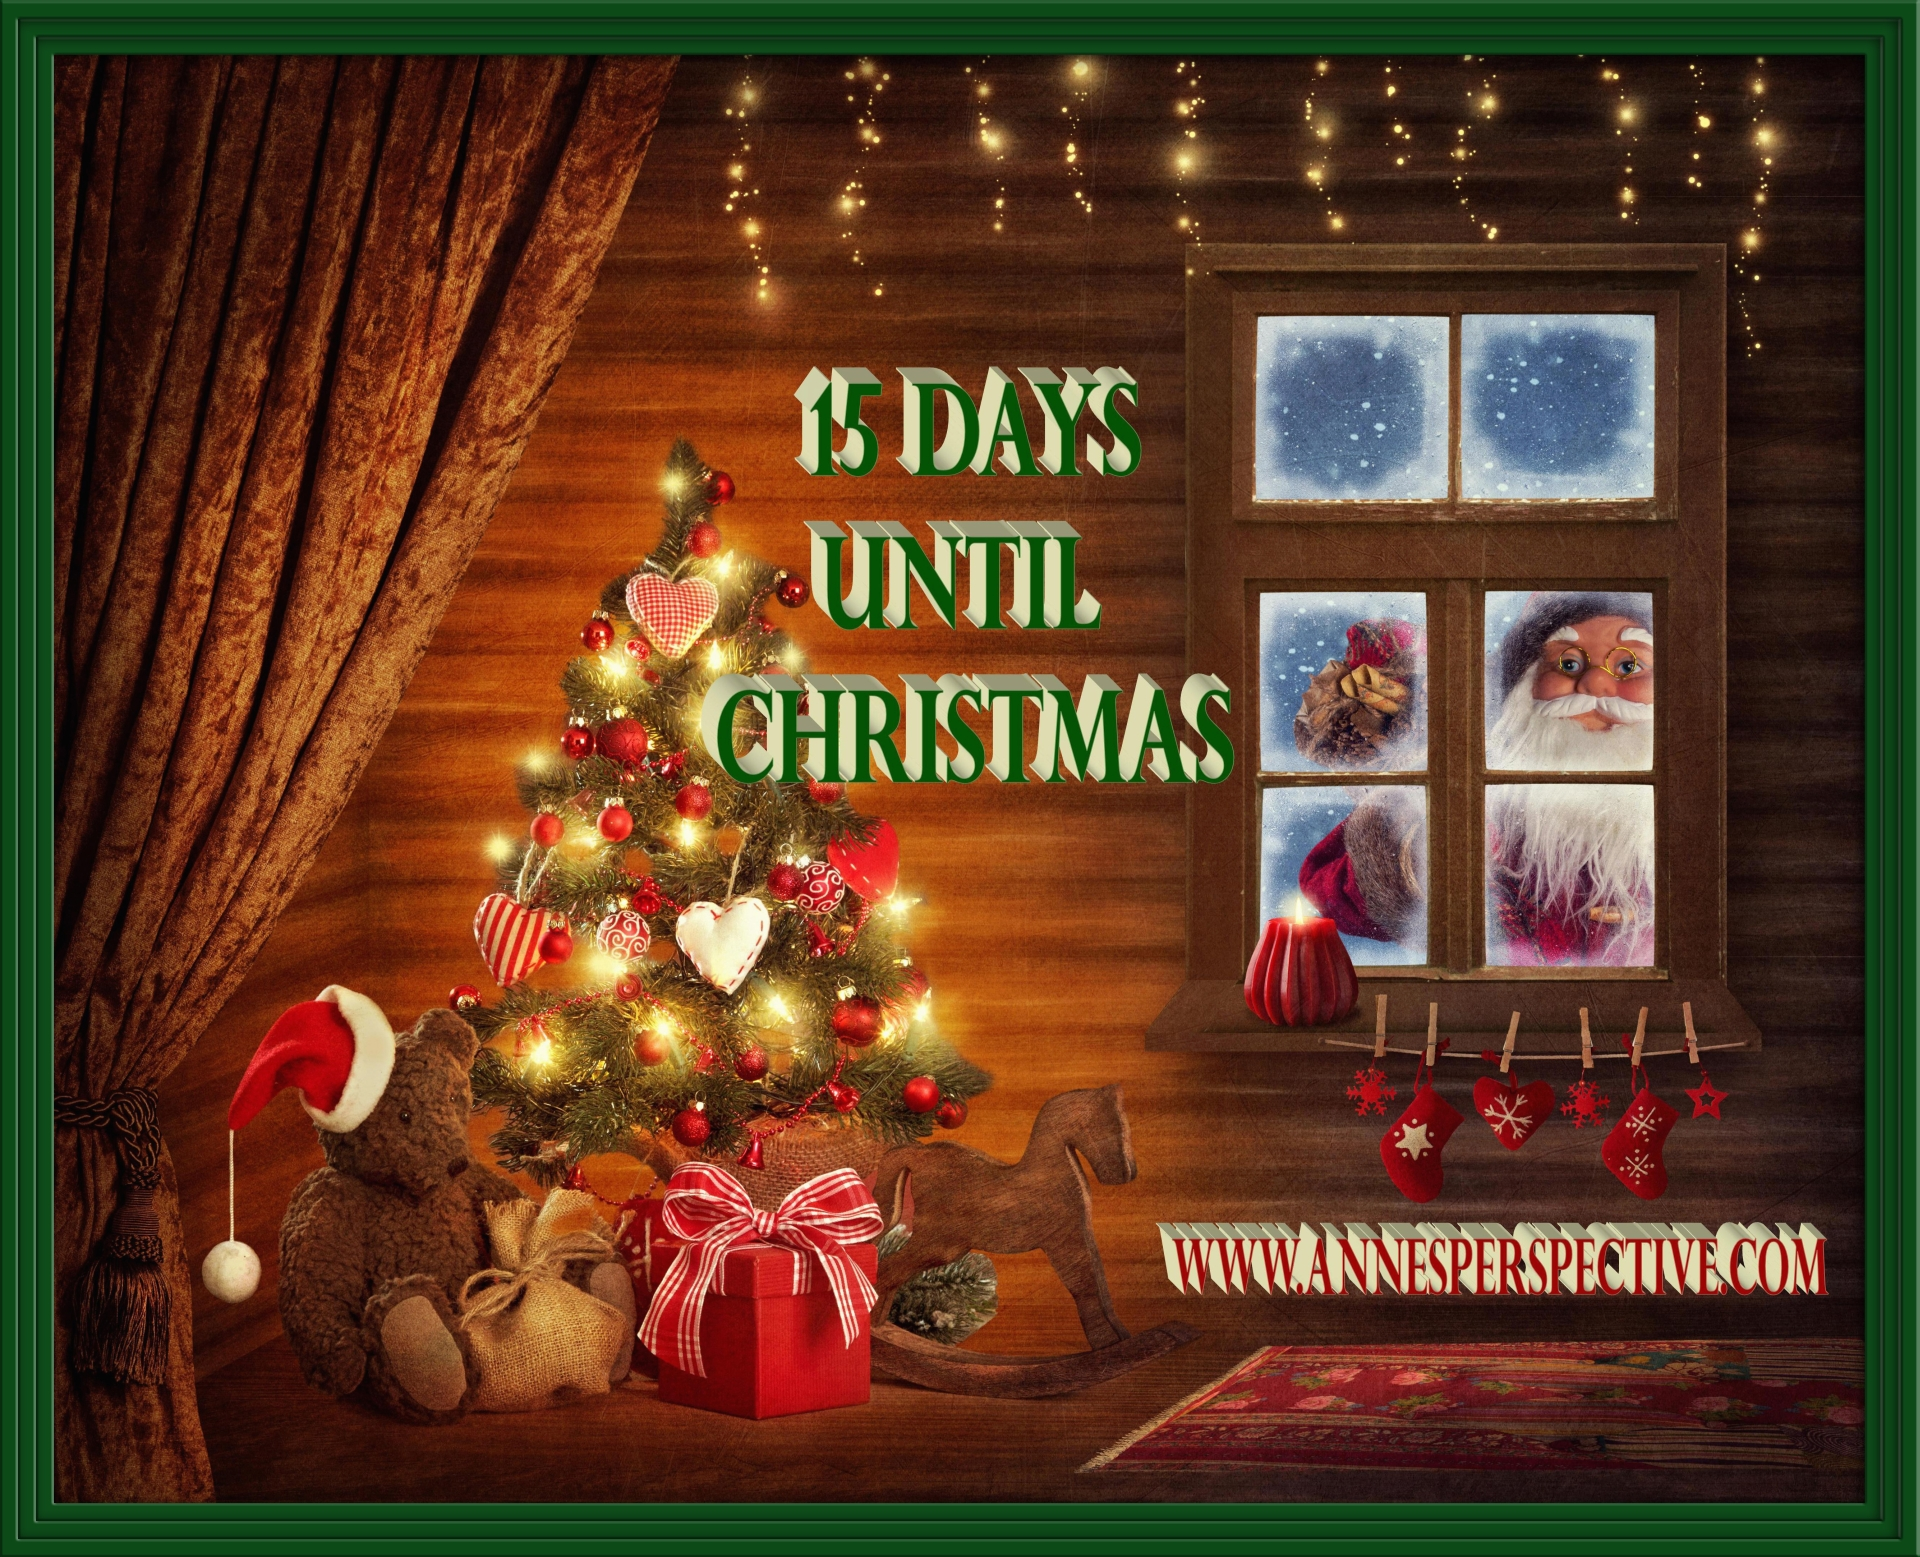 Until Christmas 10 Weeks Till Christmas.15 Days Until Christmas With Frame Anne S Perspective